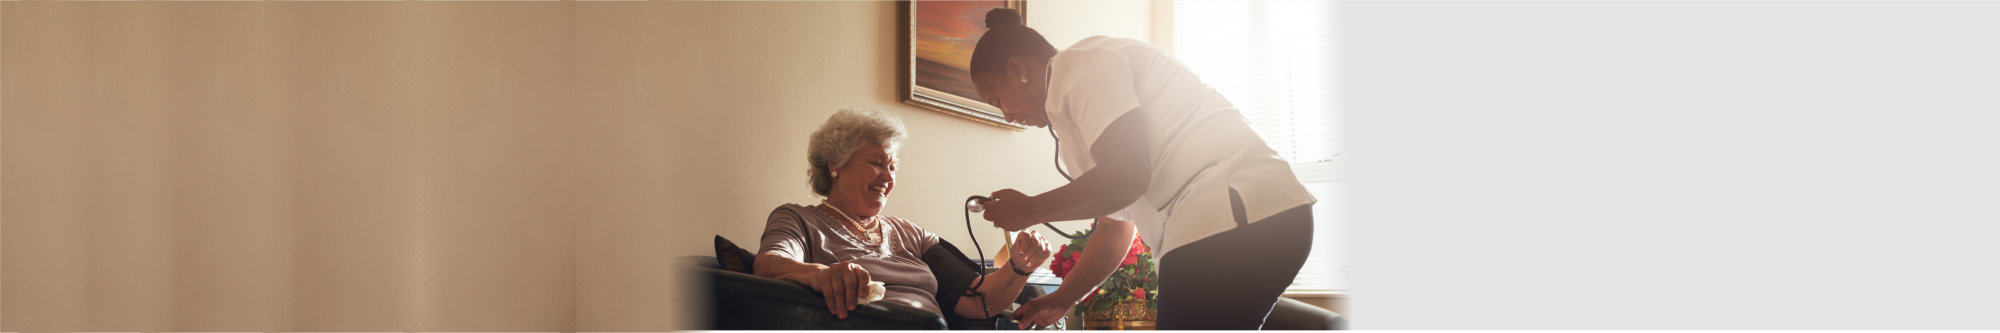 Nurse measuring blood pressure of elderly woman